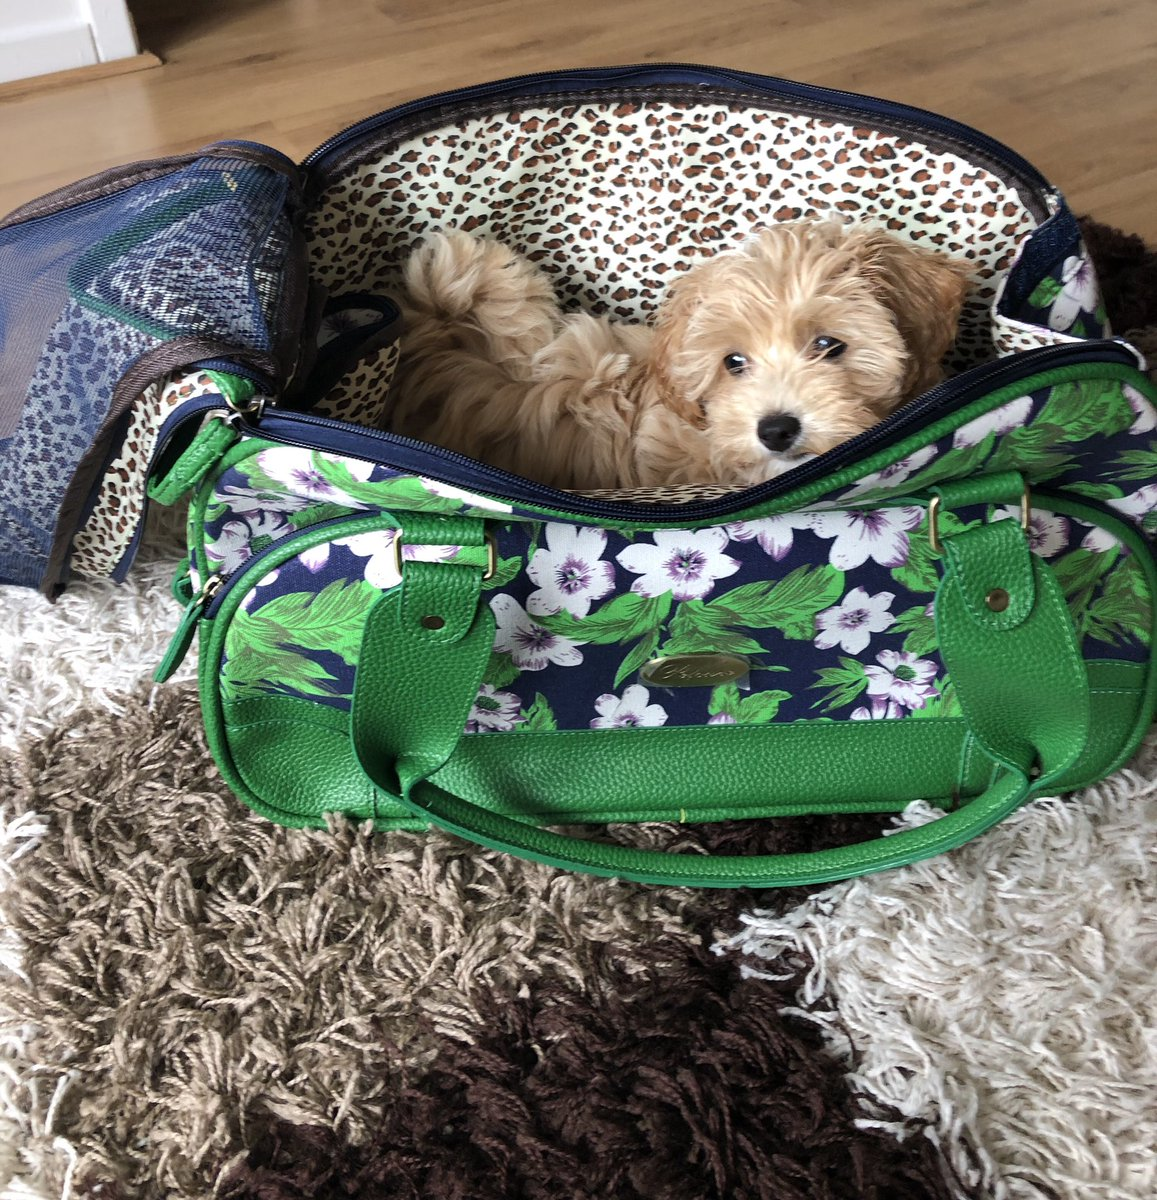 Lola loves her new pet carrier! 😍 Thanks @UrbanPup 💕 #LittleLola #Maltipoo #MaltipooPuppy